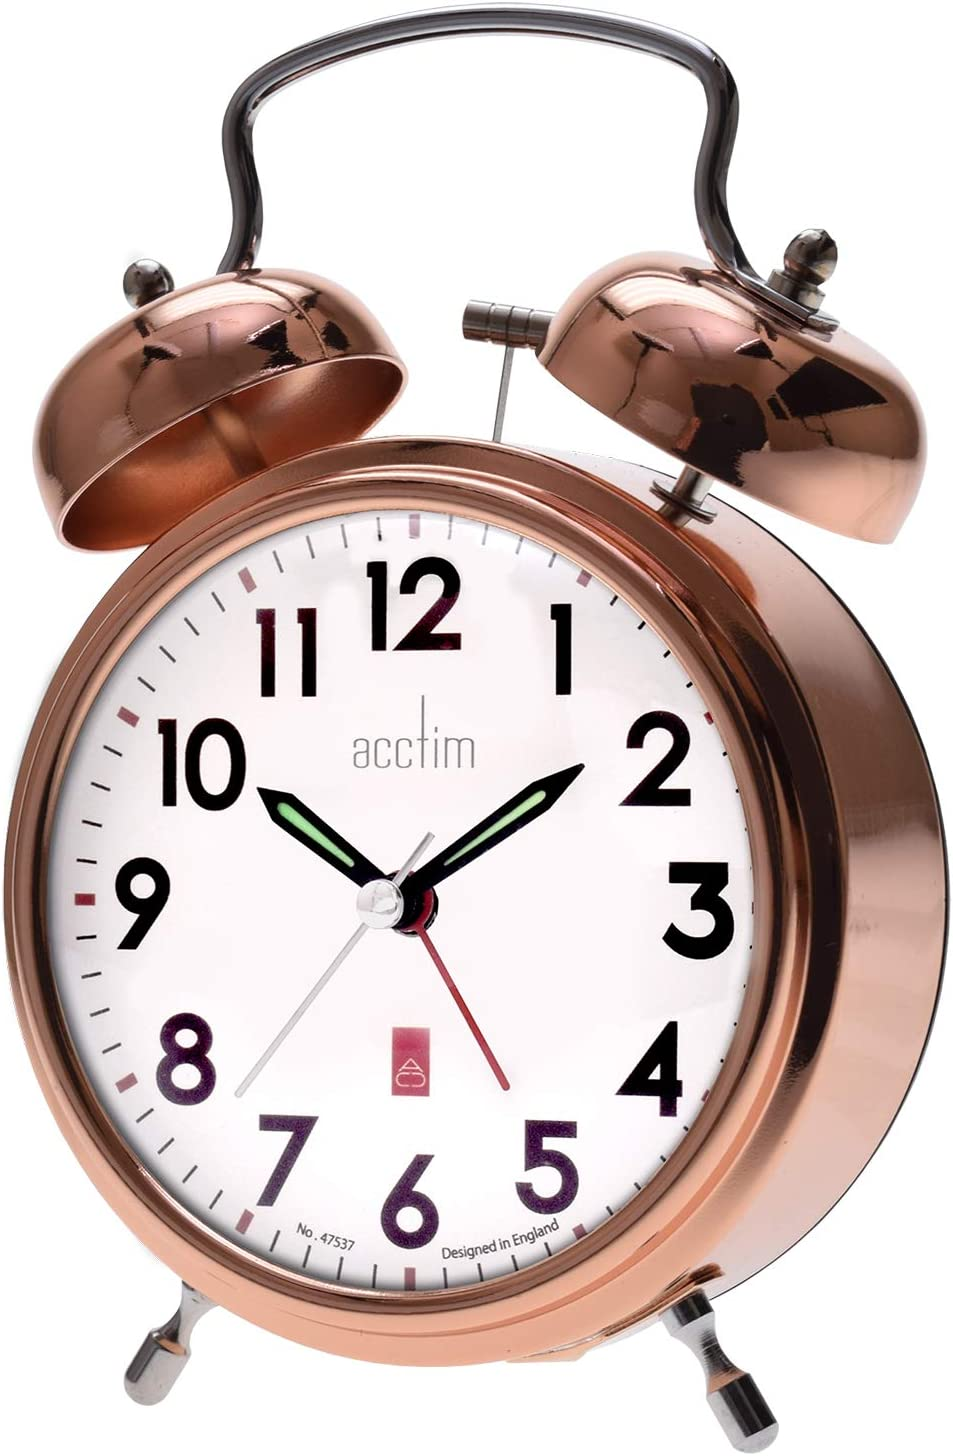 Acctim Rover Bell - Reloj despertador, color cobre